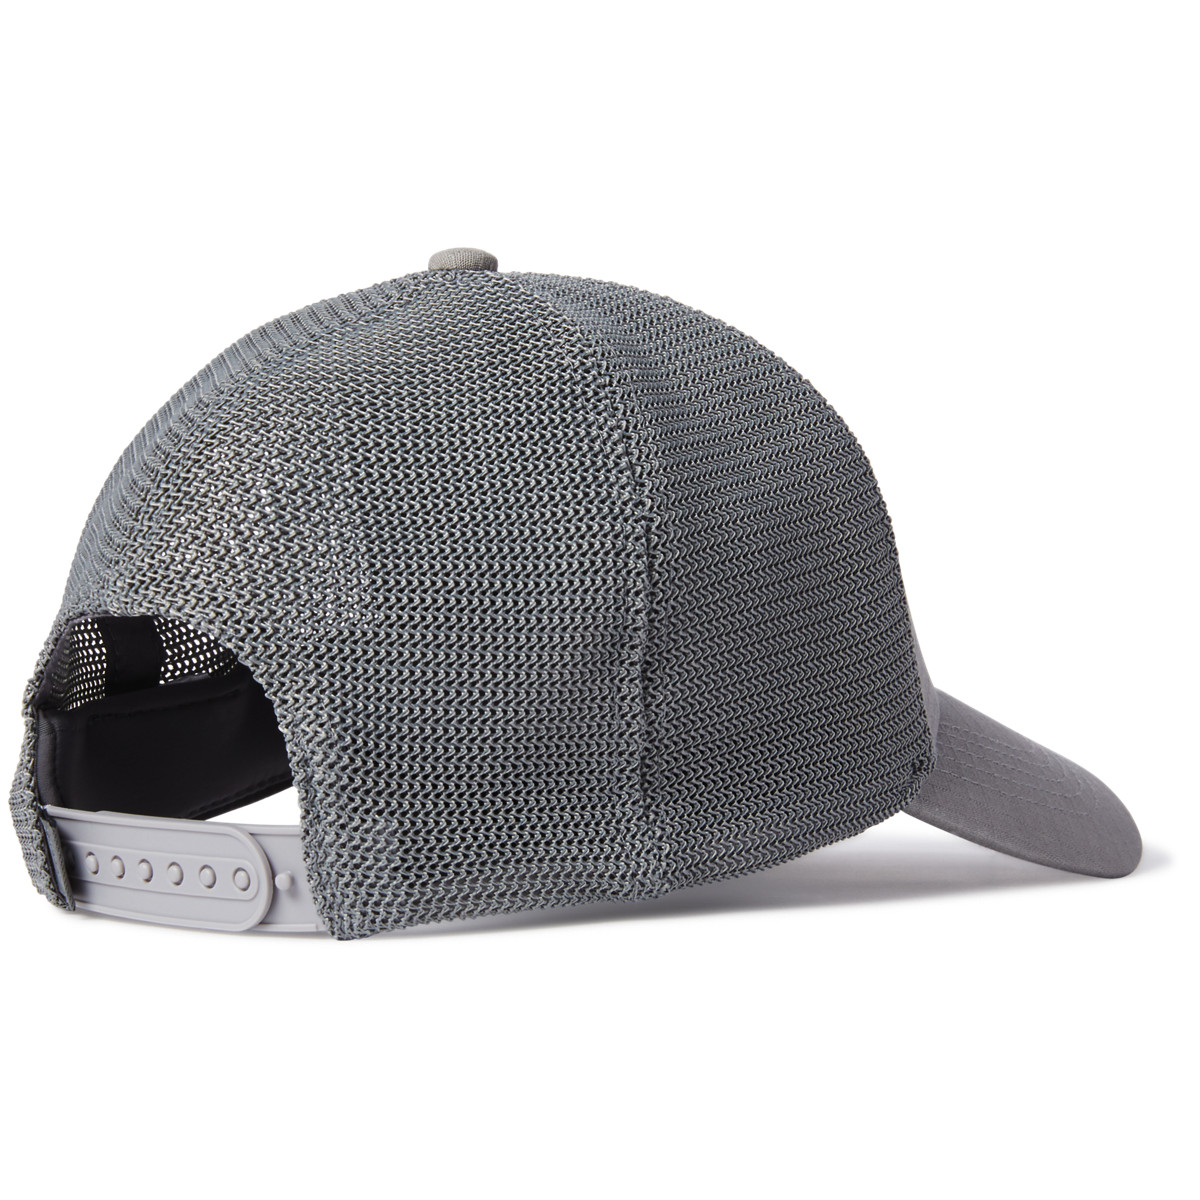 Danner Low Pro Trucker Hat - Gray